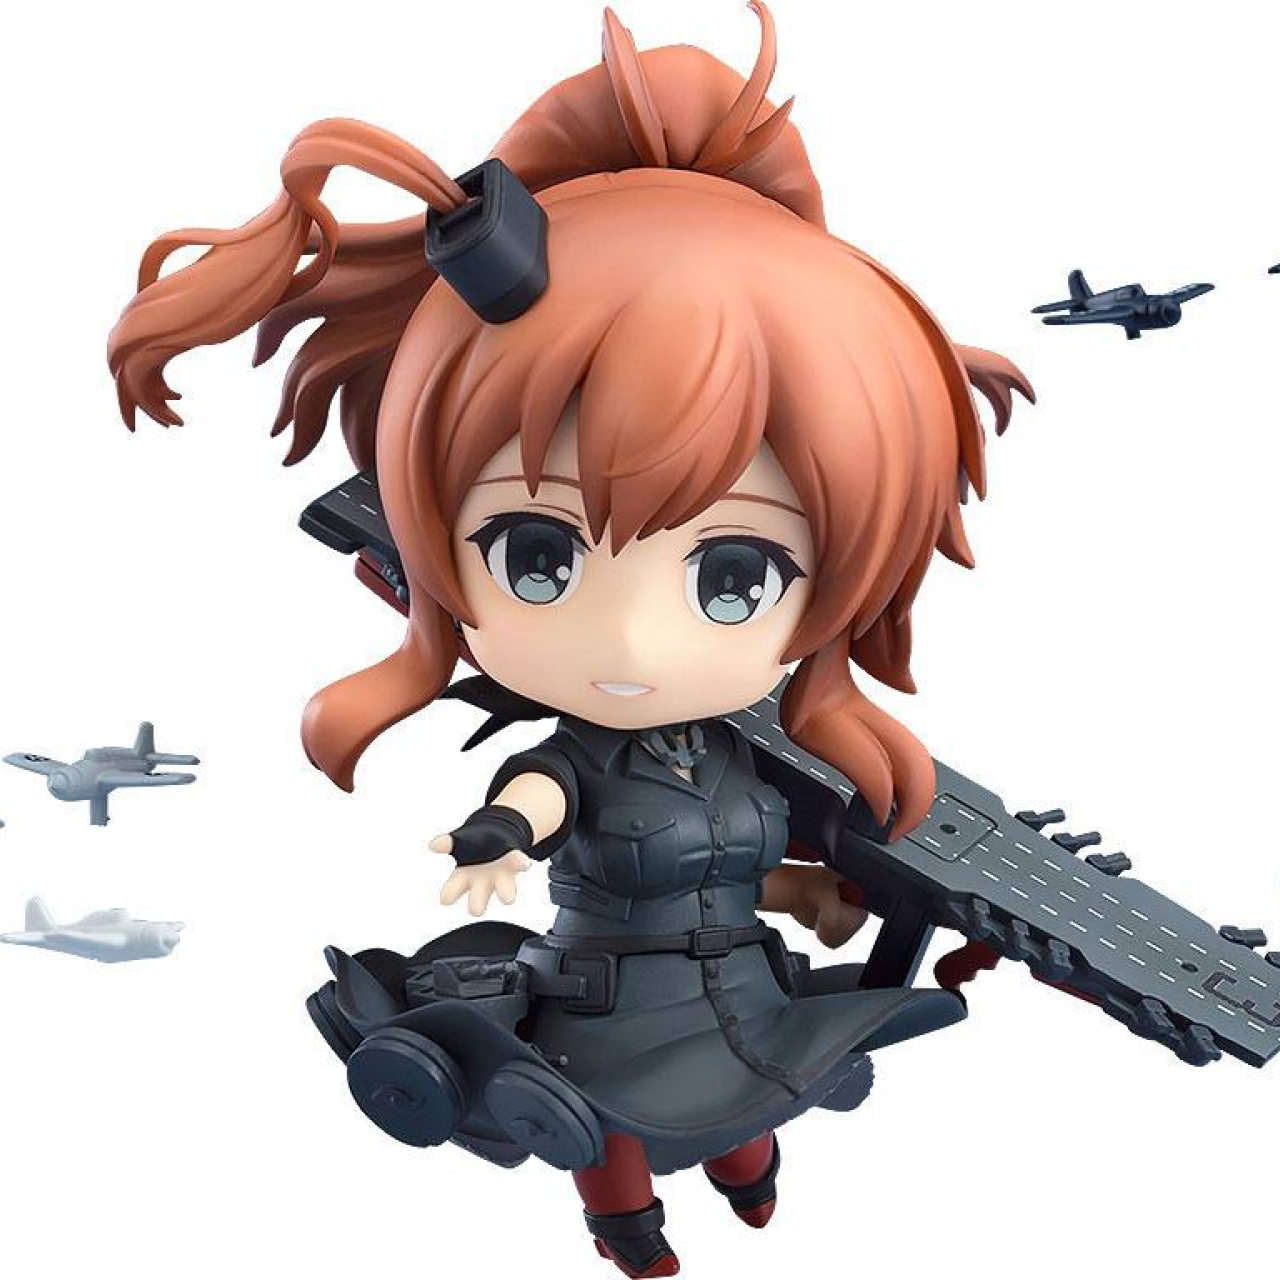 Kantai Collection Nendoroid Action Figure Saratoga Mk. II Mod.2 10 cm